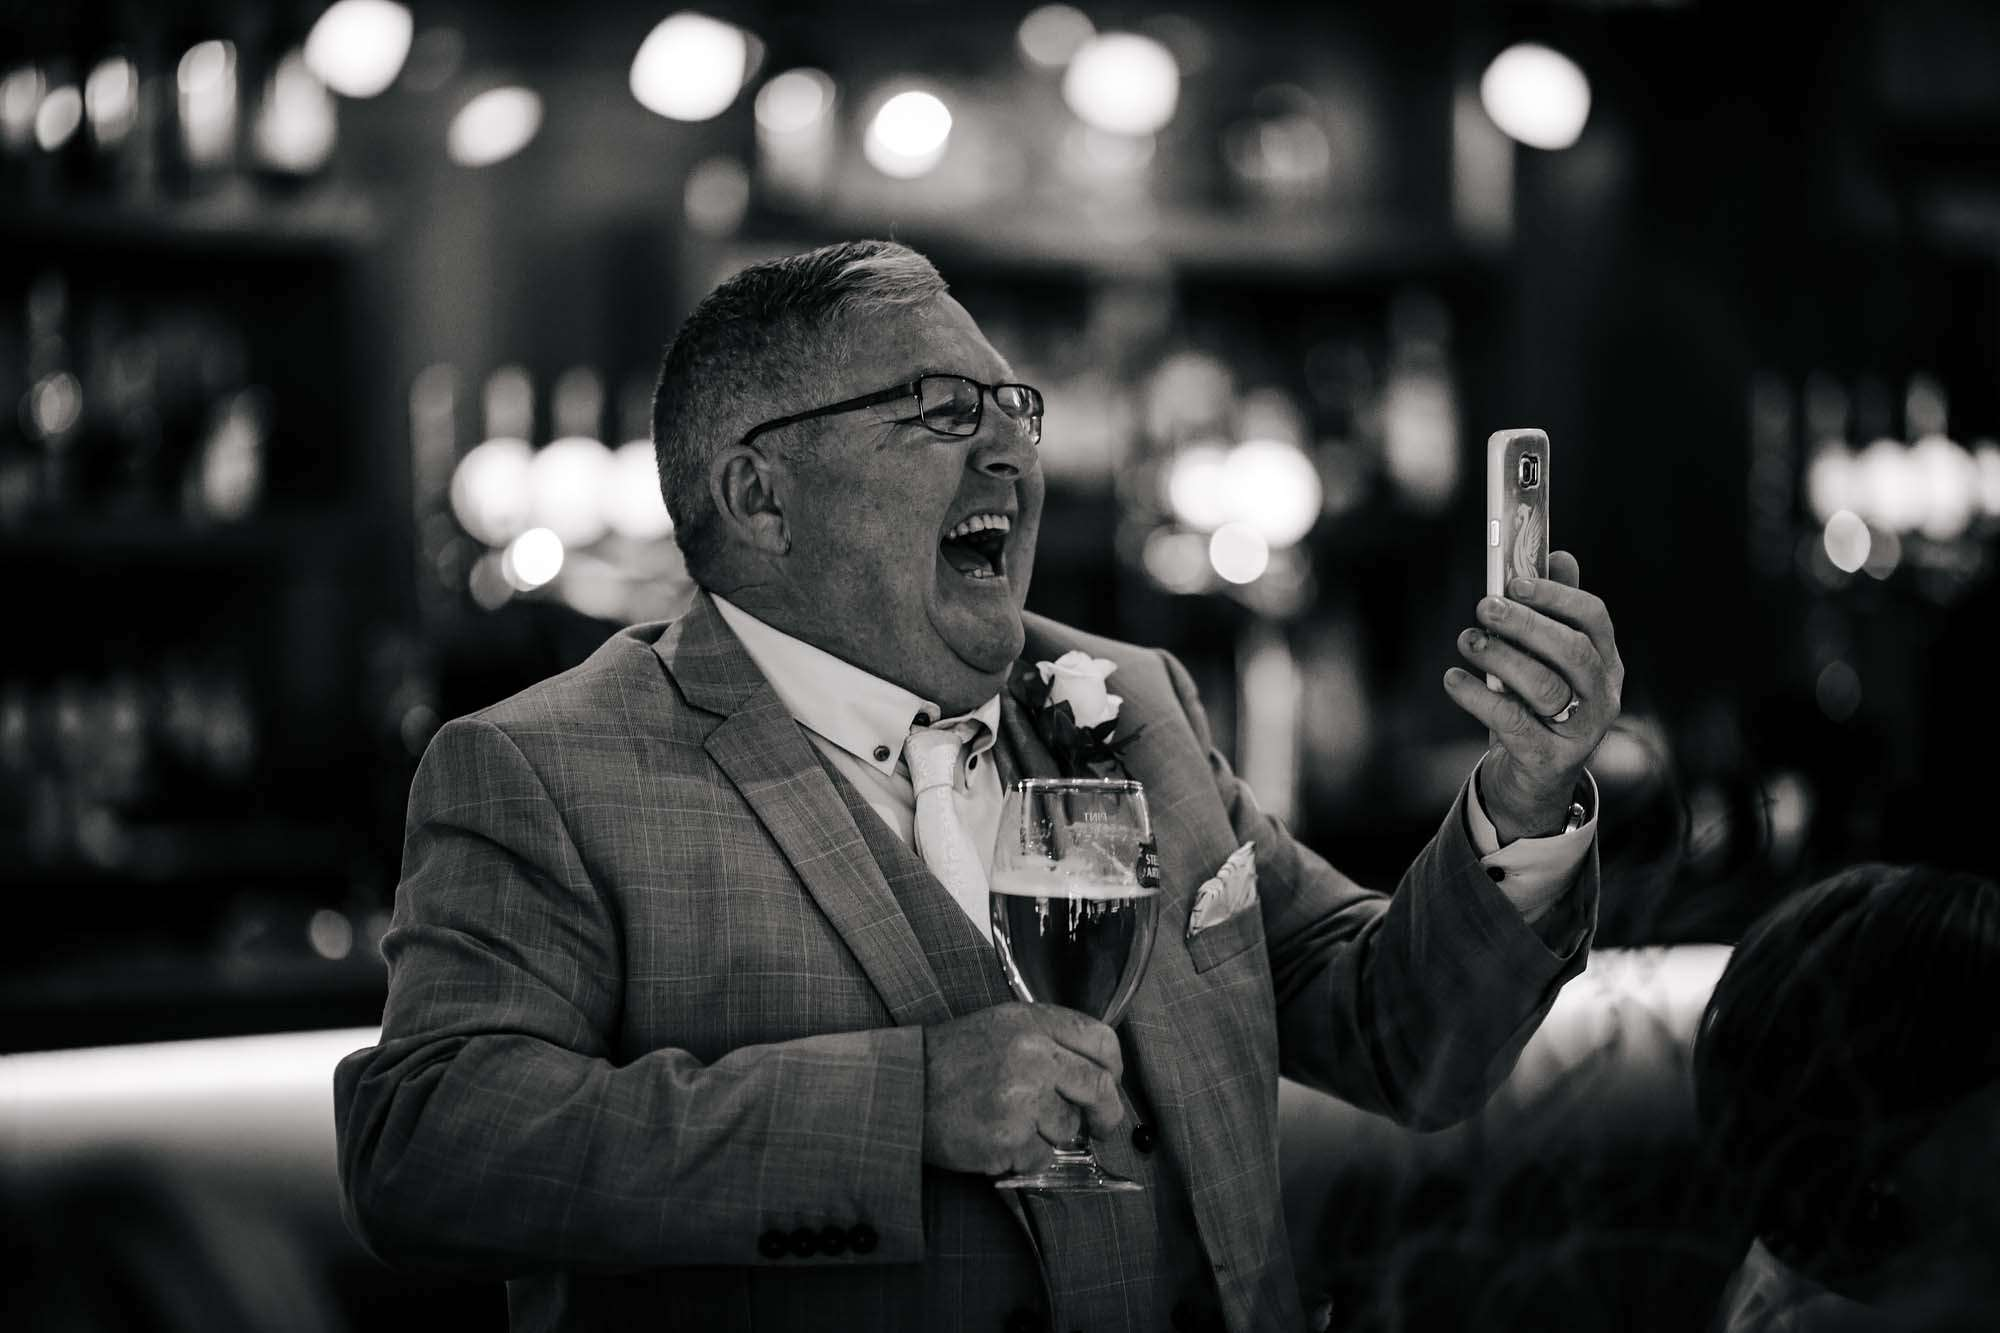 Wedding guest laughing at his mobile phone